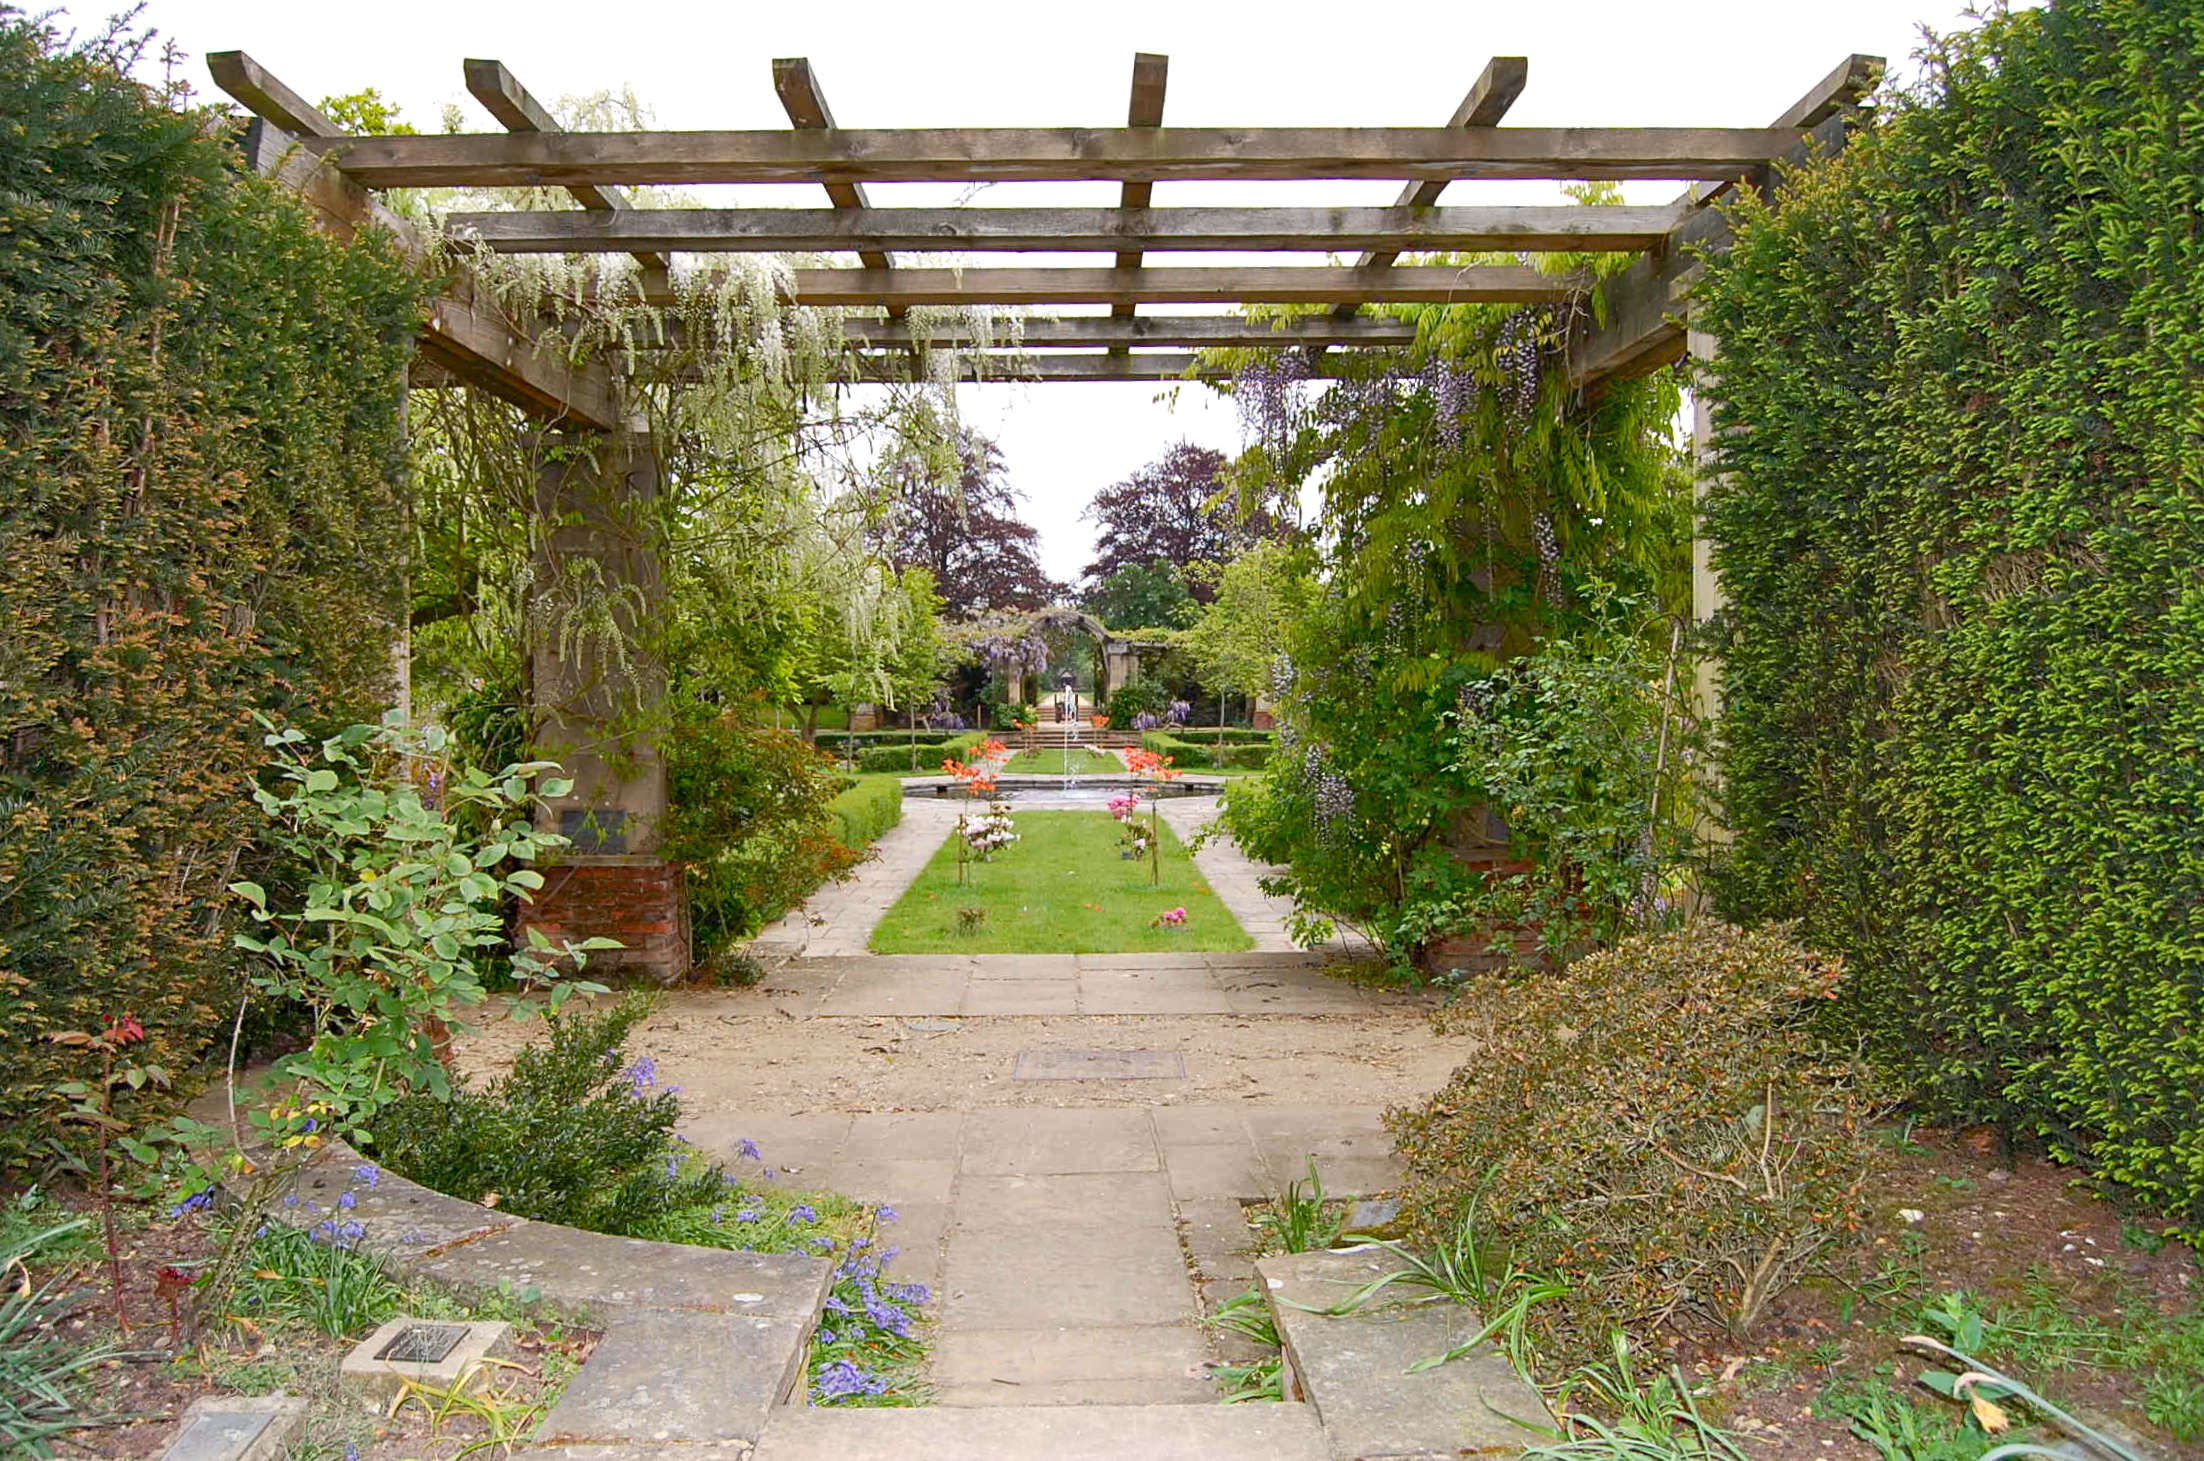 Stoke Poges Memorial Gardens Stoke Poges Parish Council